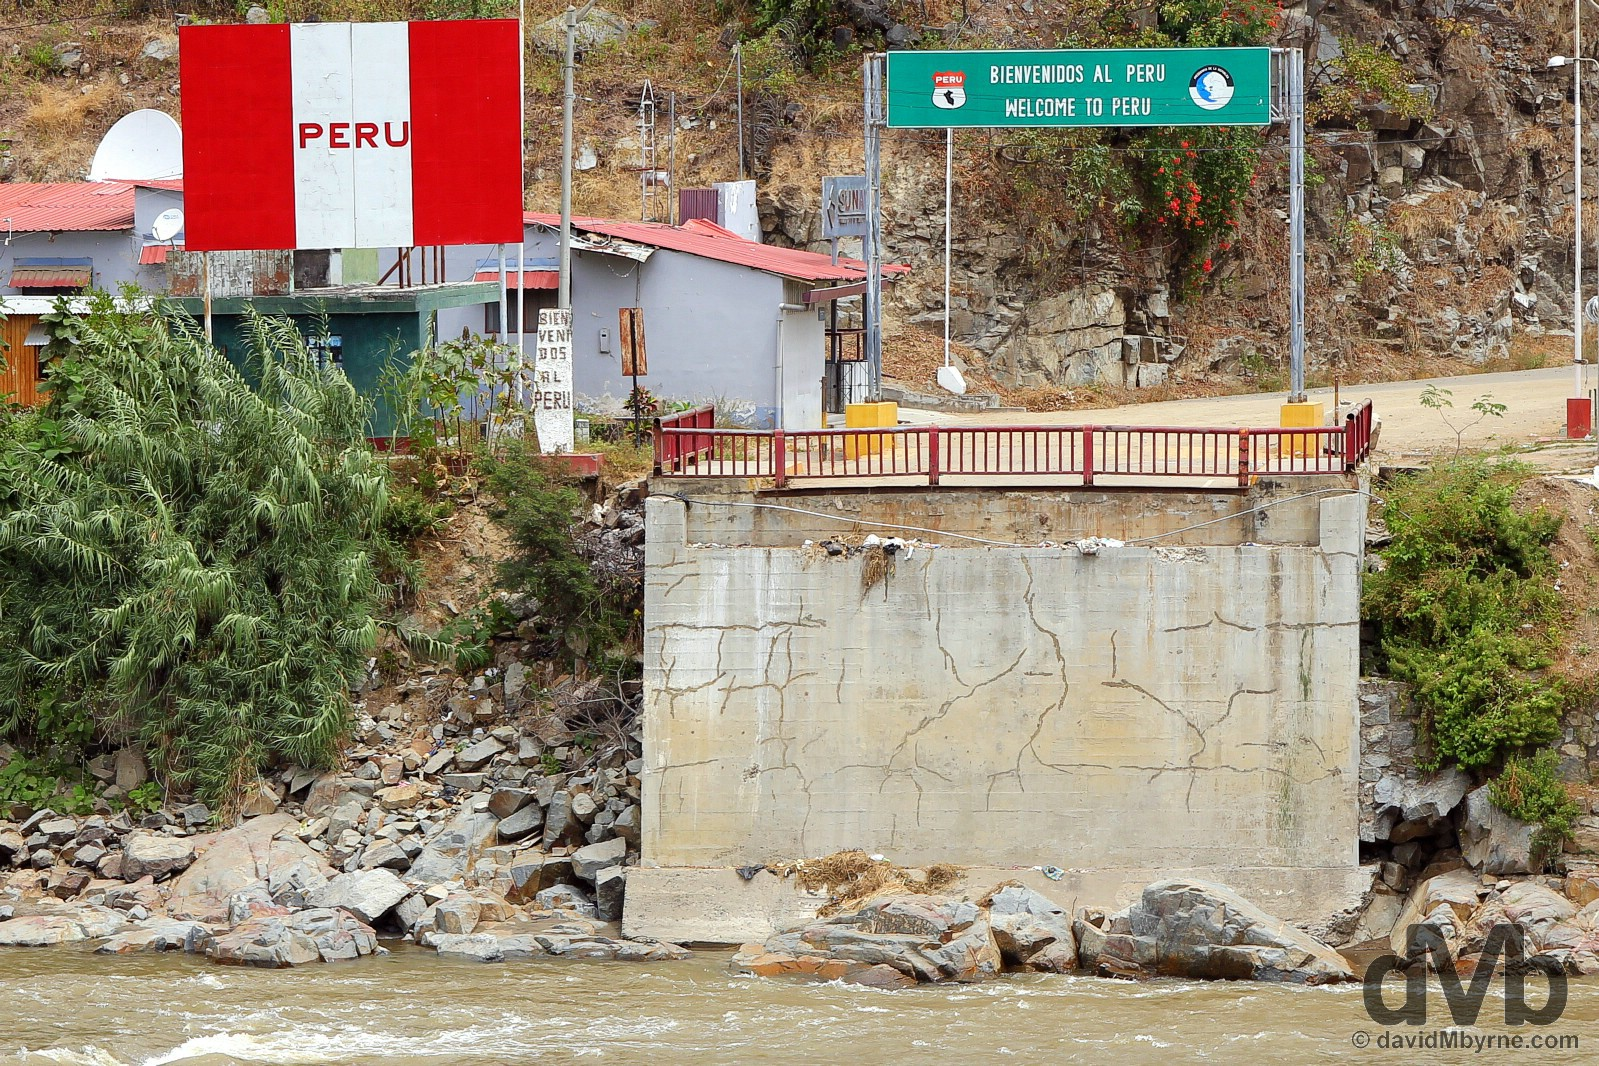 Peru as seen across the Macara River outside the town of Macara, southern Ecuador. July 28, 2015.